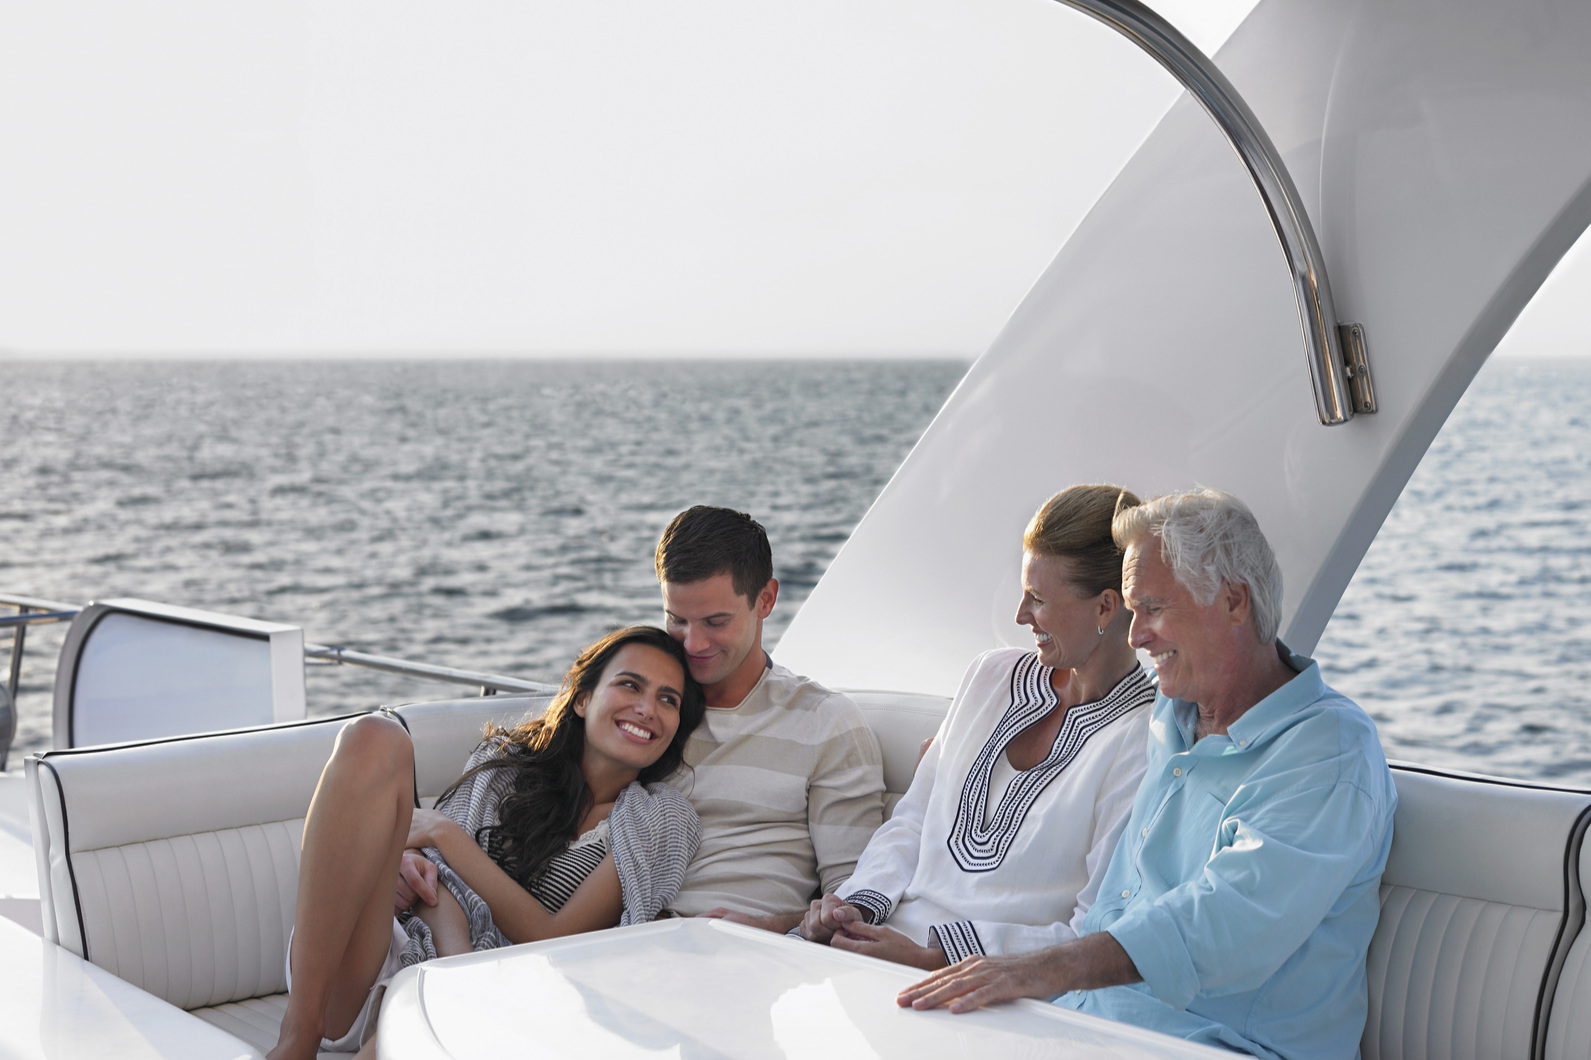 Premium Membership - Exclusive usage rights to your favourite yacht for the duration of 3 years: A Premium Yacht Timeshare Membership will allow you to use yachts at your desired destination for up to 6 weeks a year. Ensure holiday enjoyment with family and friends far in advance aboard your favourite yacht. A timeshare yacht ownership is far more cost-effective than chartering a yacht.FIND OUT MORE >>EXAMPLES OF USAGE RIGHTS >>